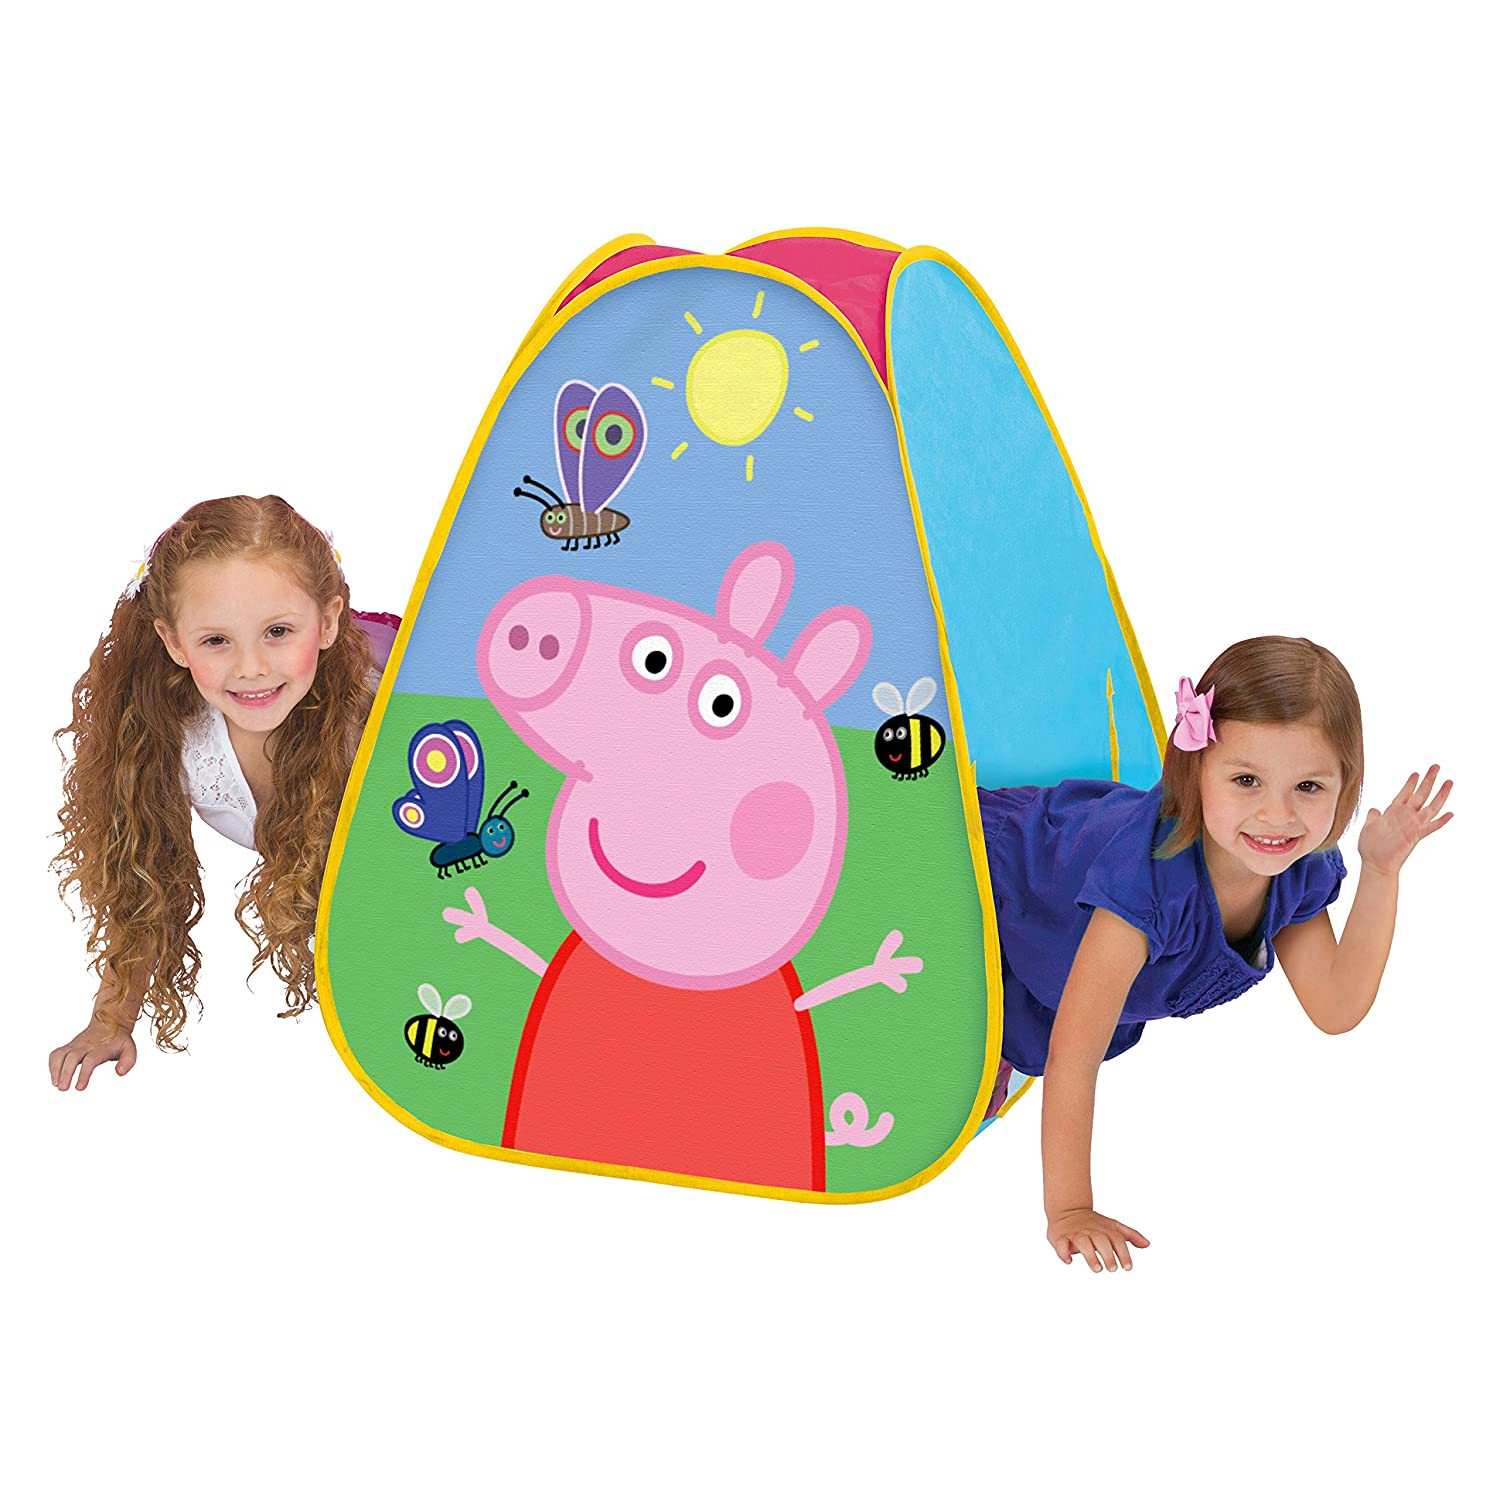 Playhut Peppa Pig Classic Hideaway Playhouse Pink  sc 1 st  Amazon.com & Amazon.com: Peppa Pig Play Hut Tent Tunnel Easy Set Up 4 Feet ...